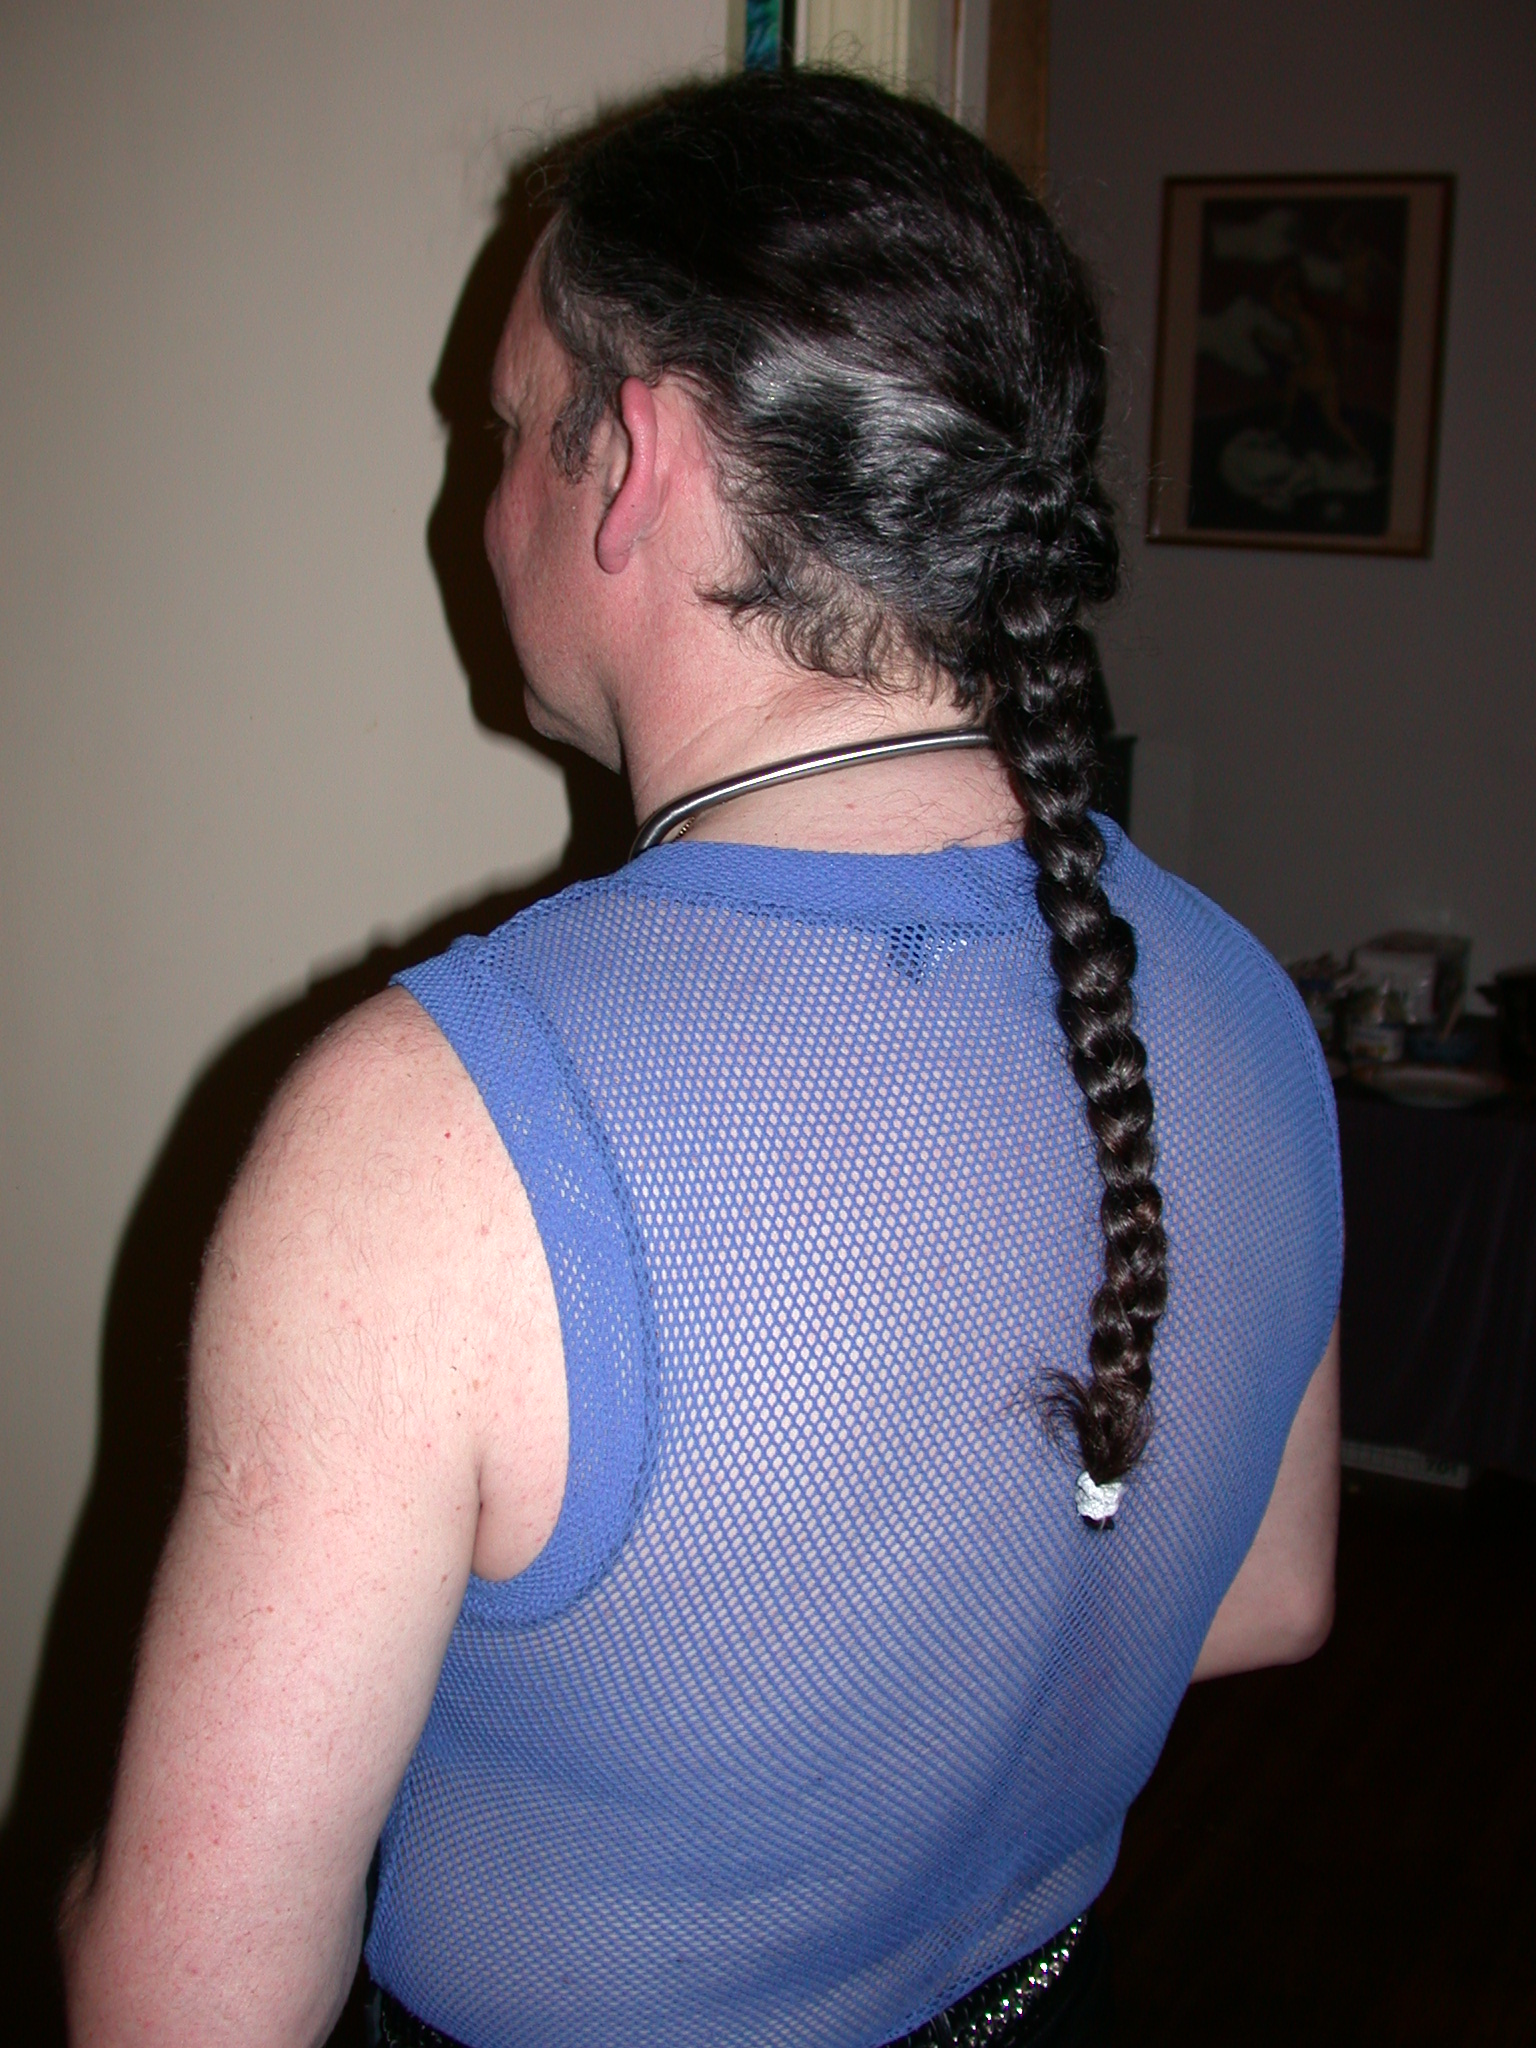 Bryan Braided From Rear